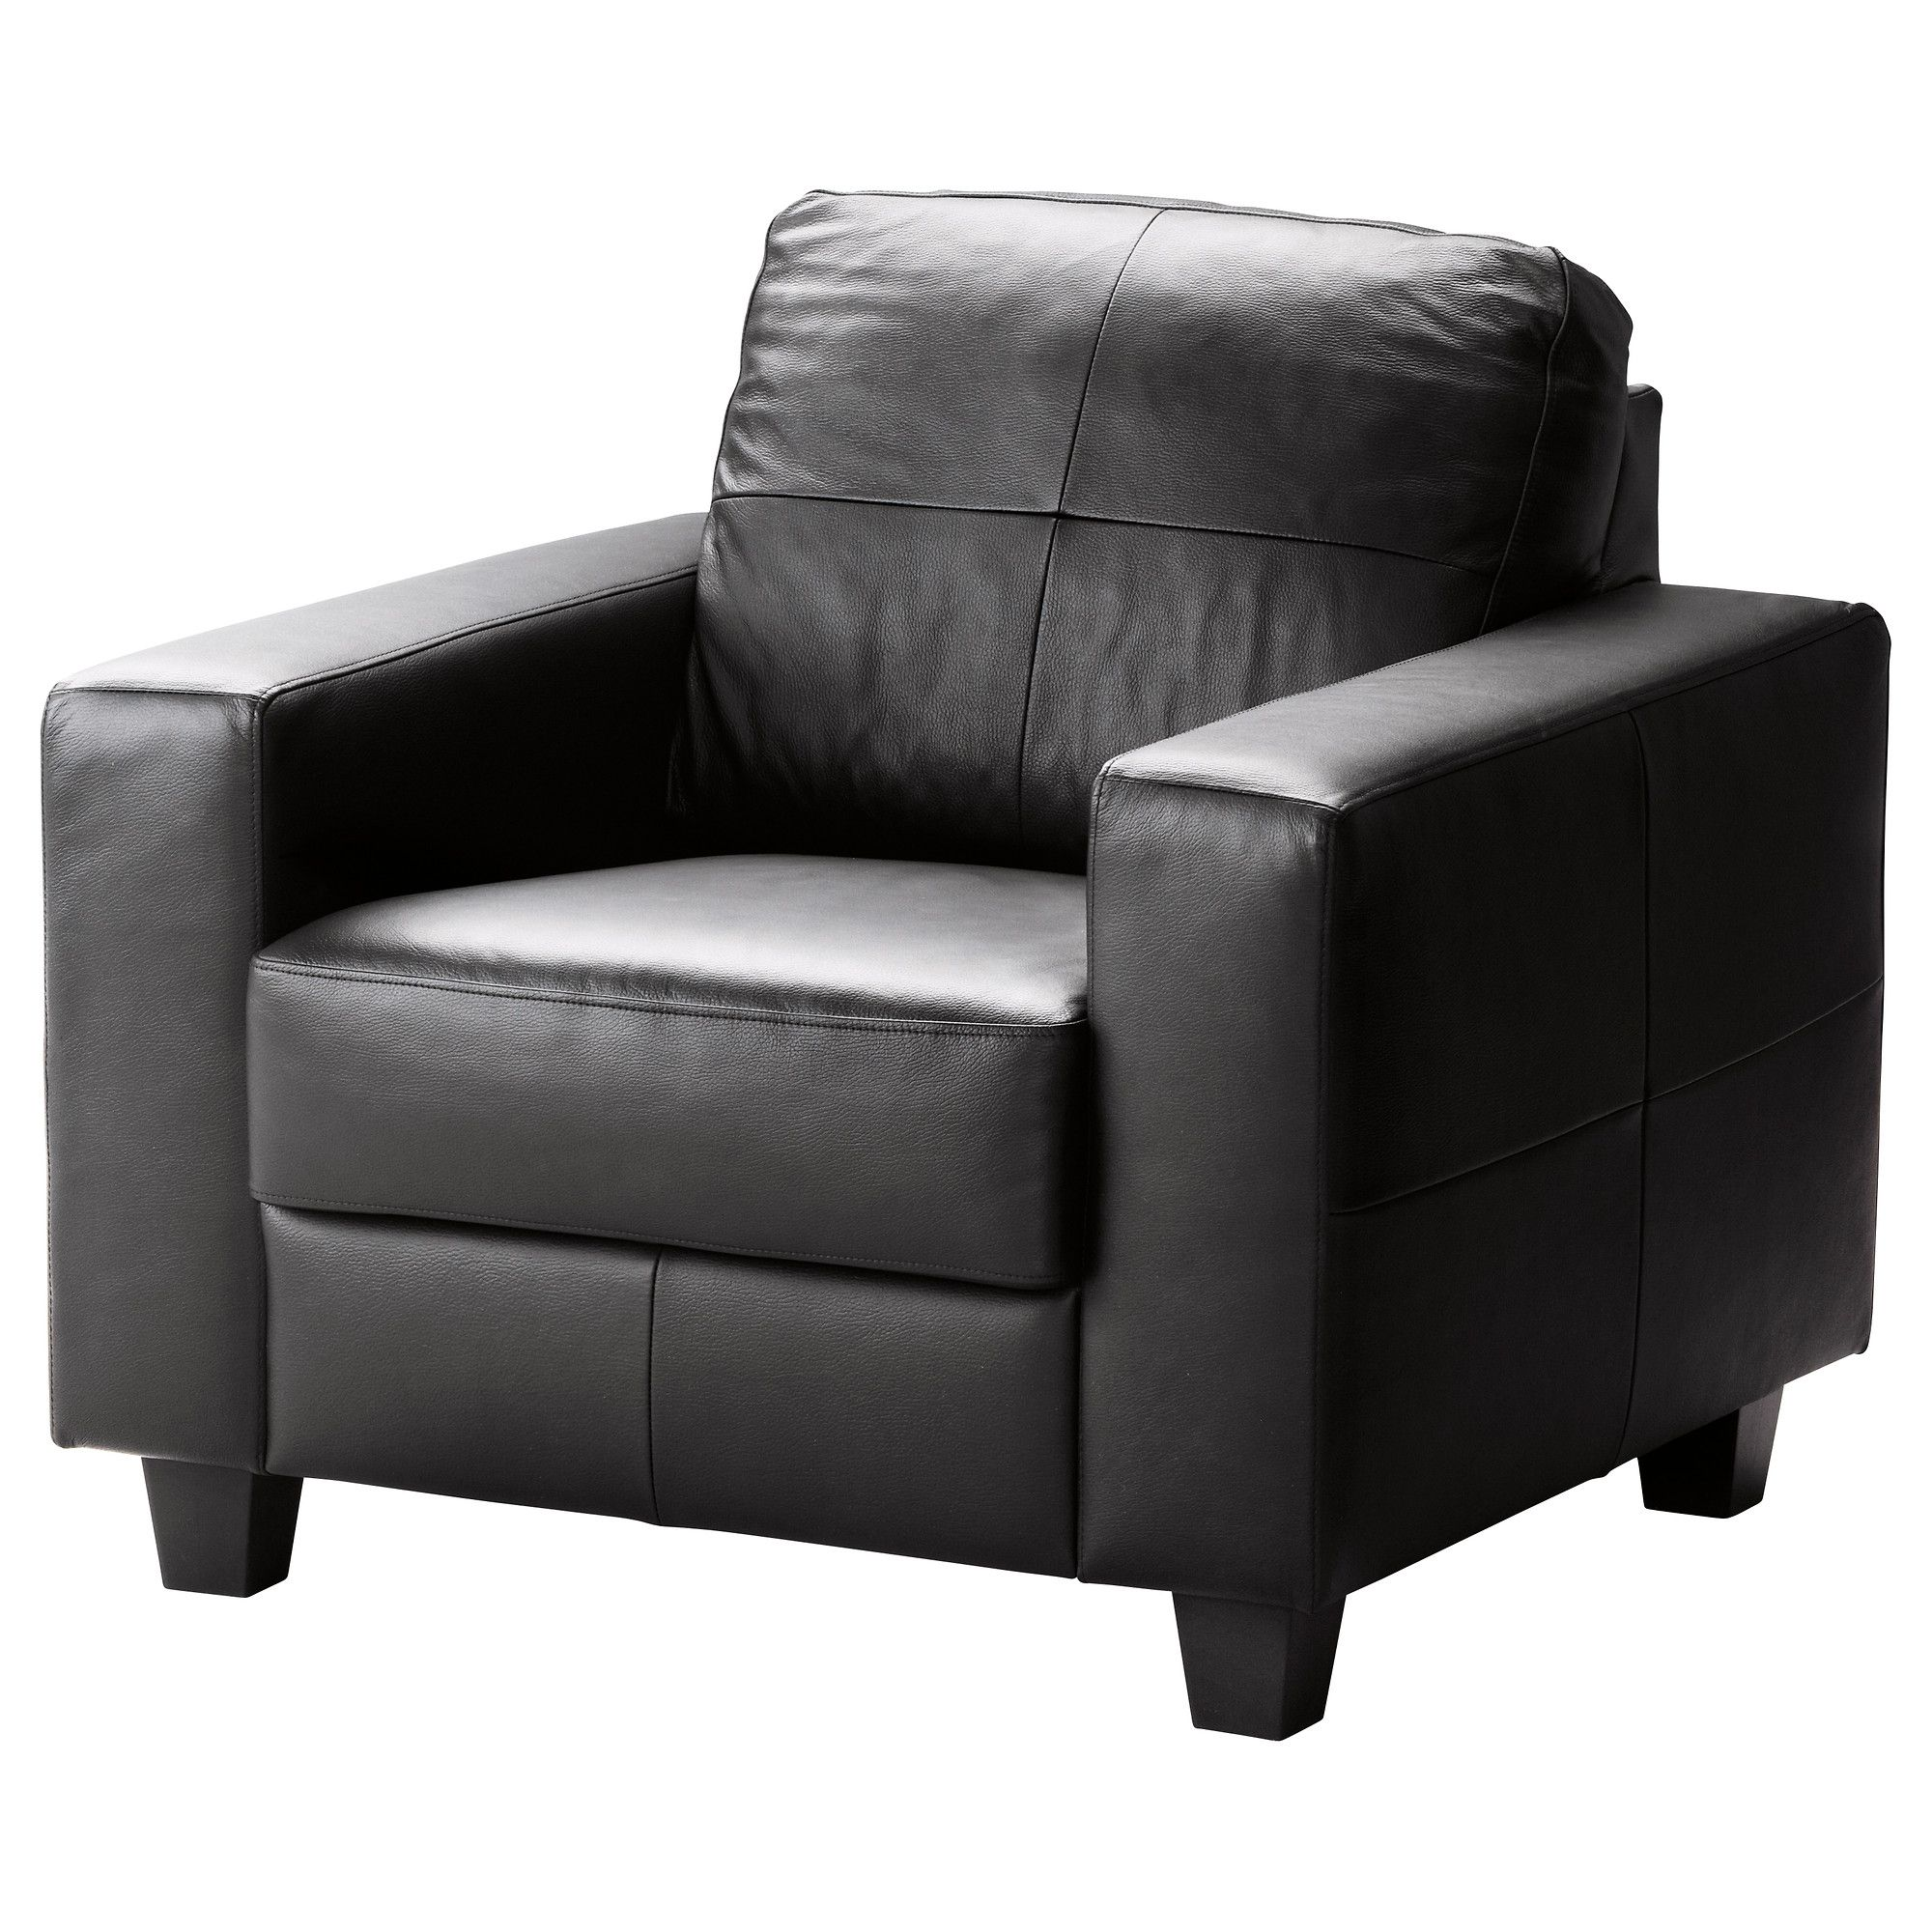 black products scandinavian chair leather designs cigno med